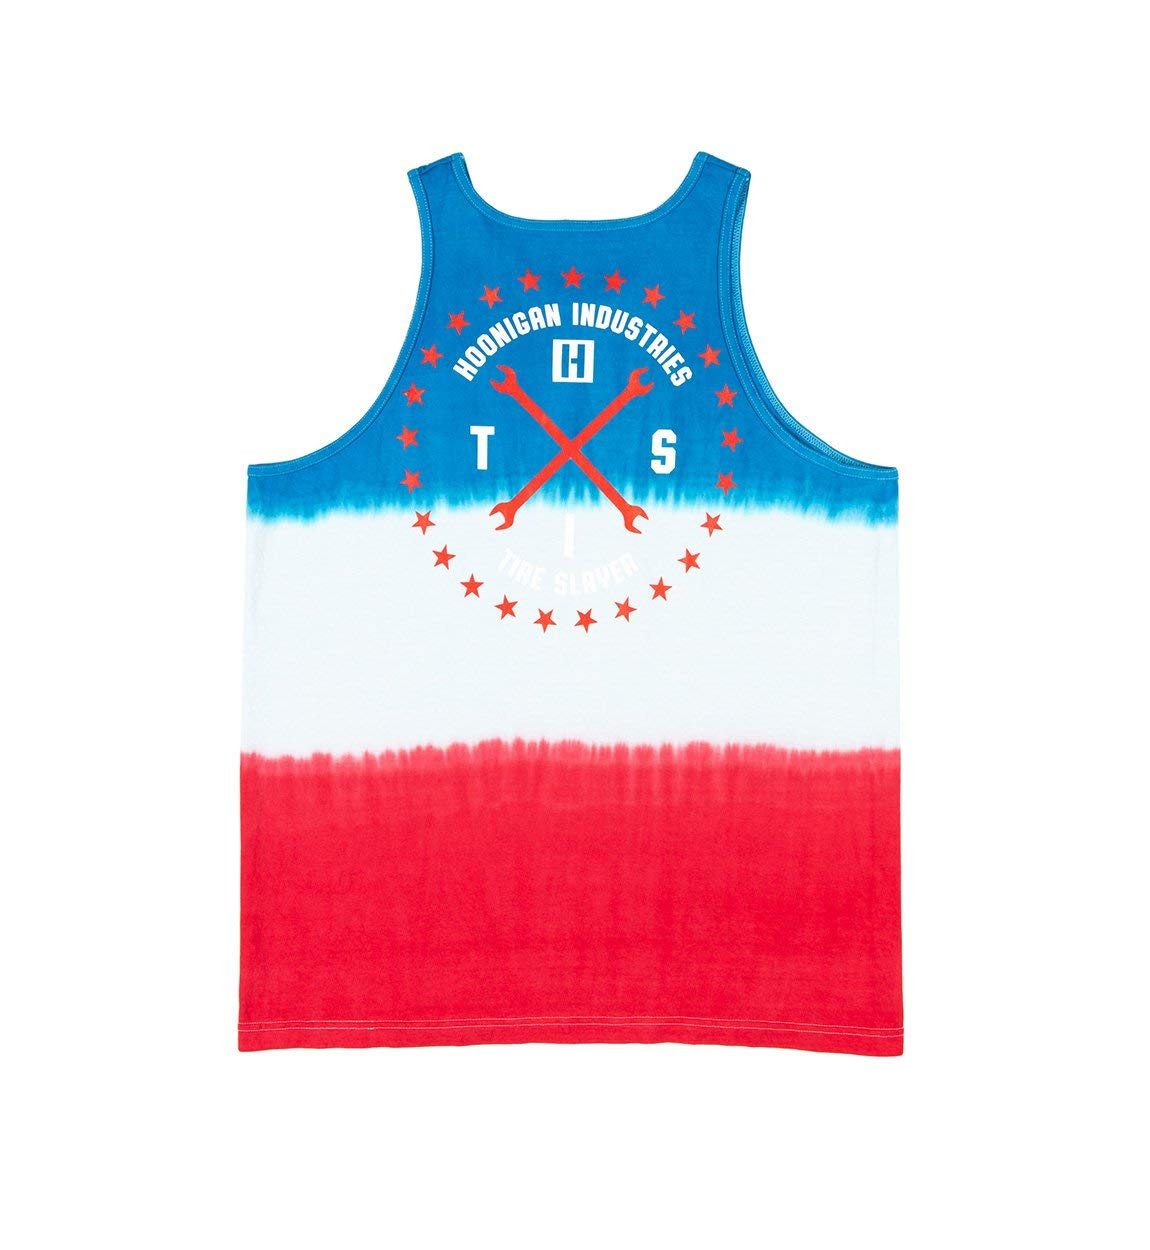 Hoonigan Greatful Shred Graphic Tank Top | Perfect for Car and Drifting Enthusiasts, Mechanics and Gear Heads | Available in Small to 3X